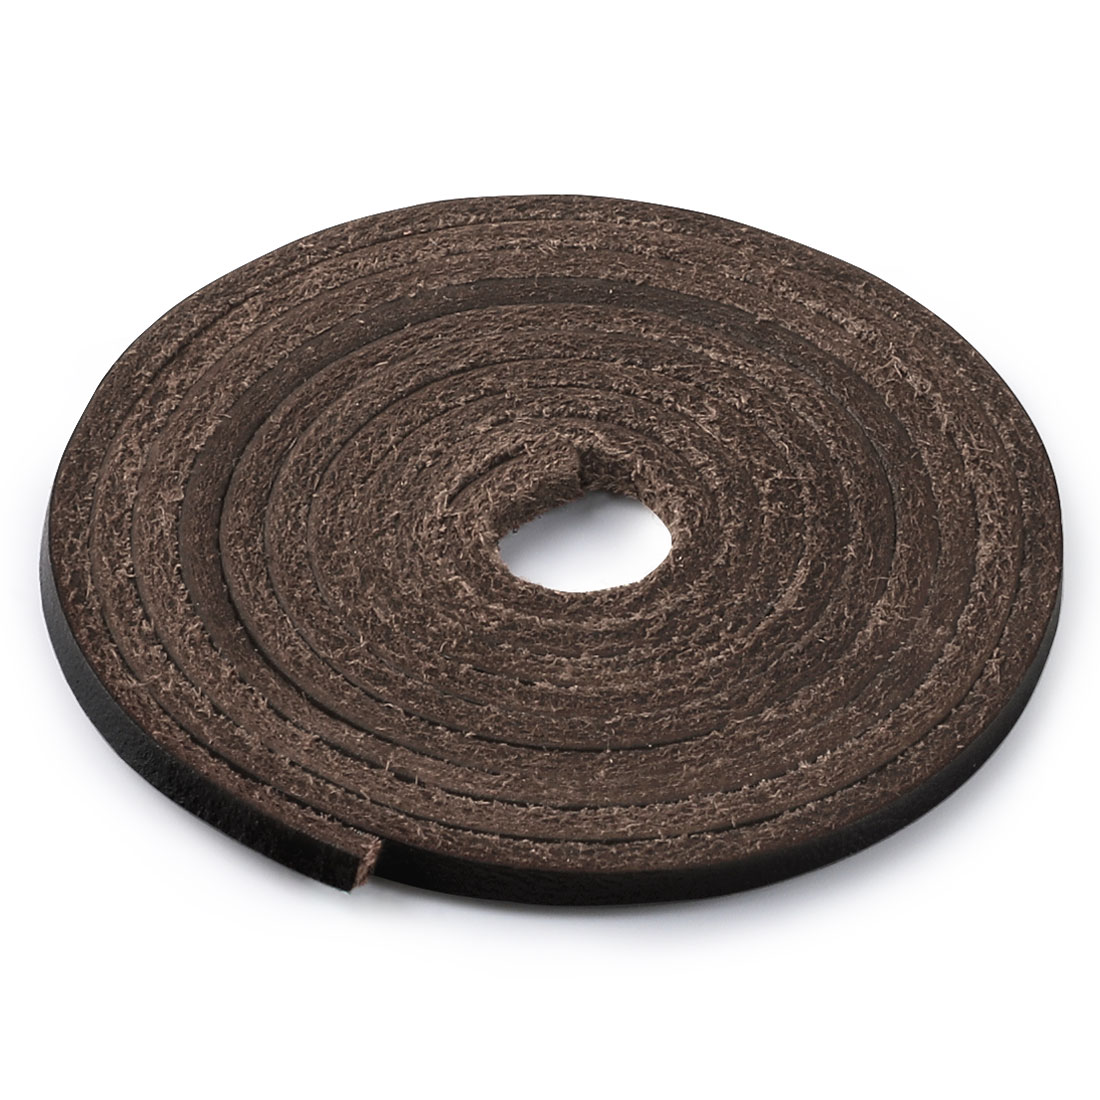 """Leather Boot Shoelaces for Boat Shoes Shoe Laces Coffee 110cm / 43.3"""""""